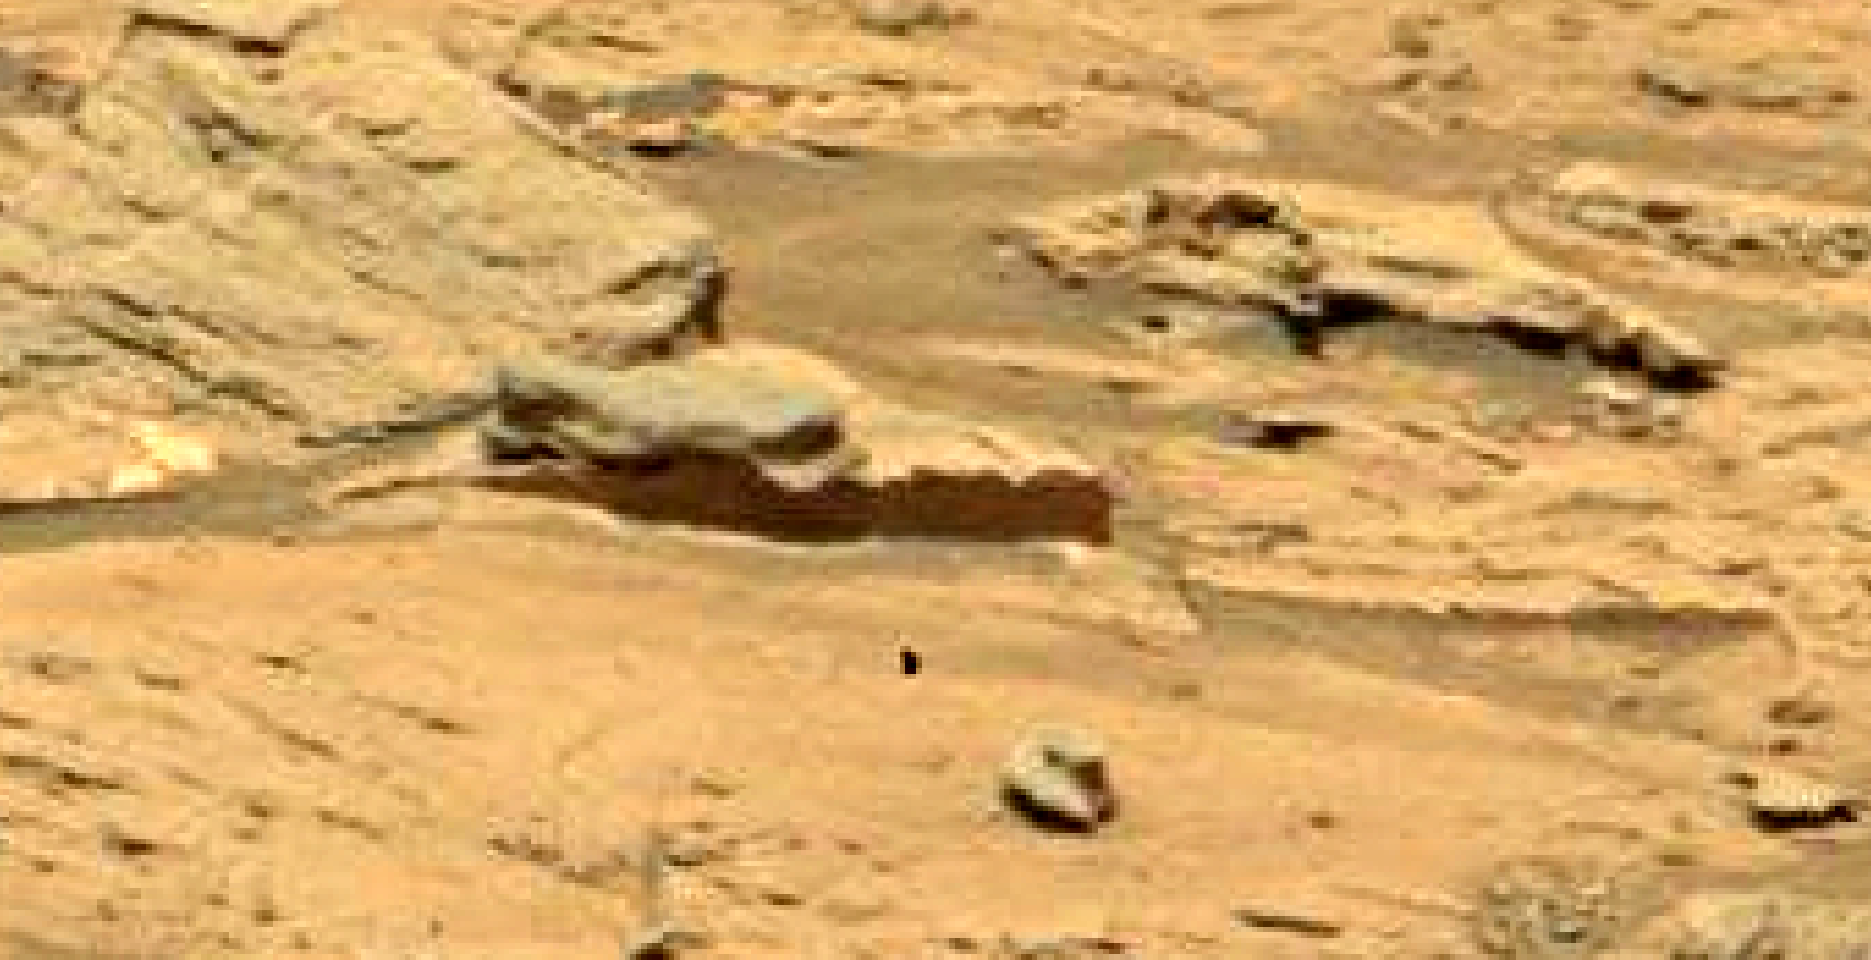 mars sol 1353 anomaly-artifacts 2b was life on mars